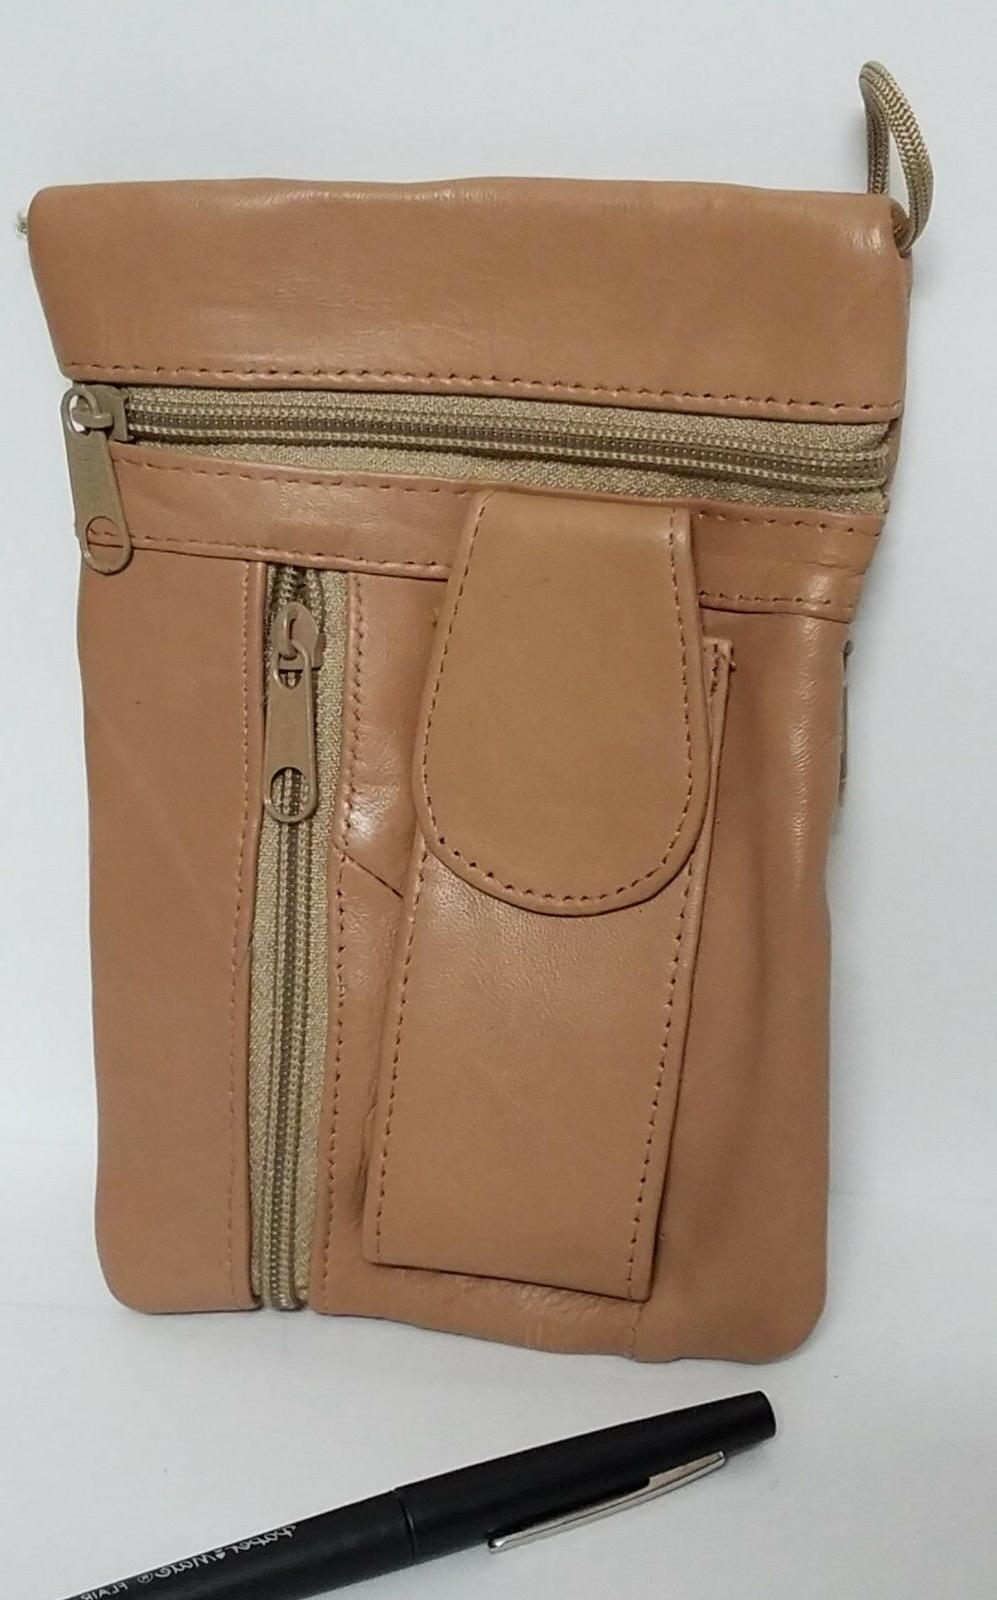 small leather bag pouch with zippers lanyard